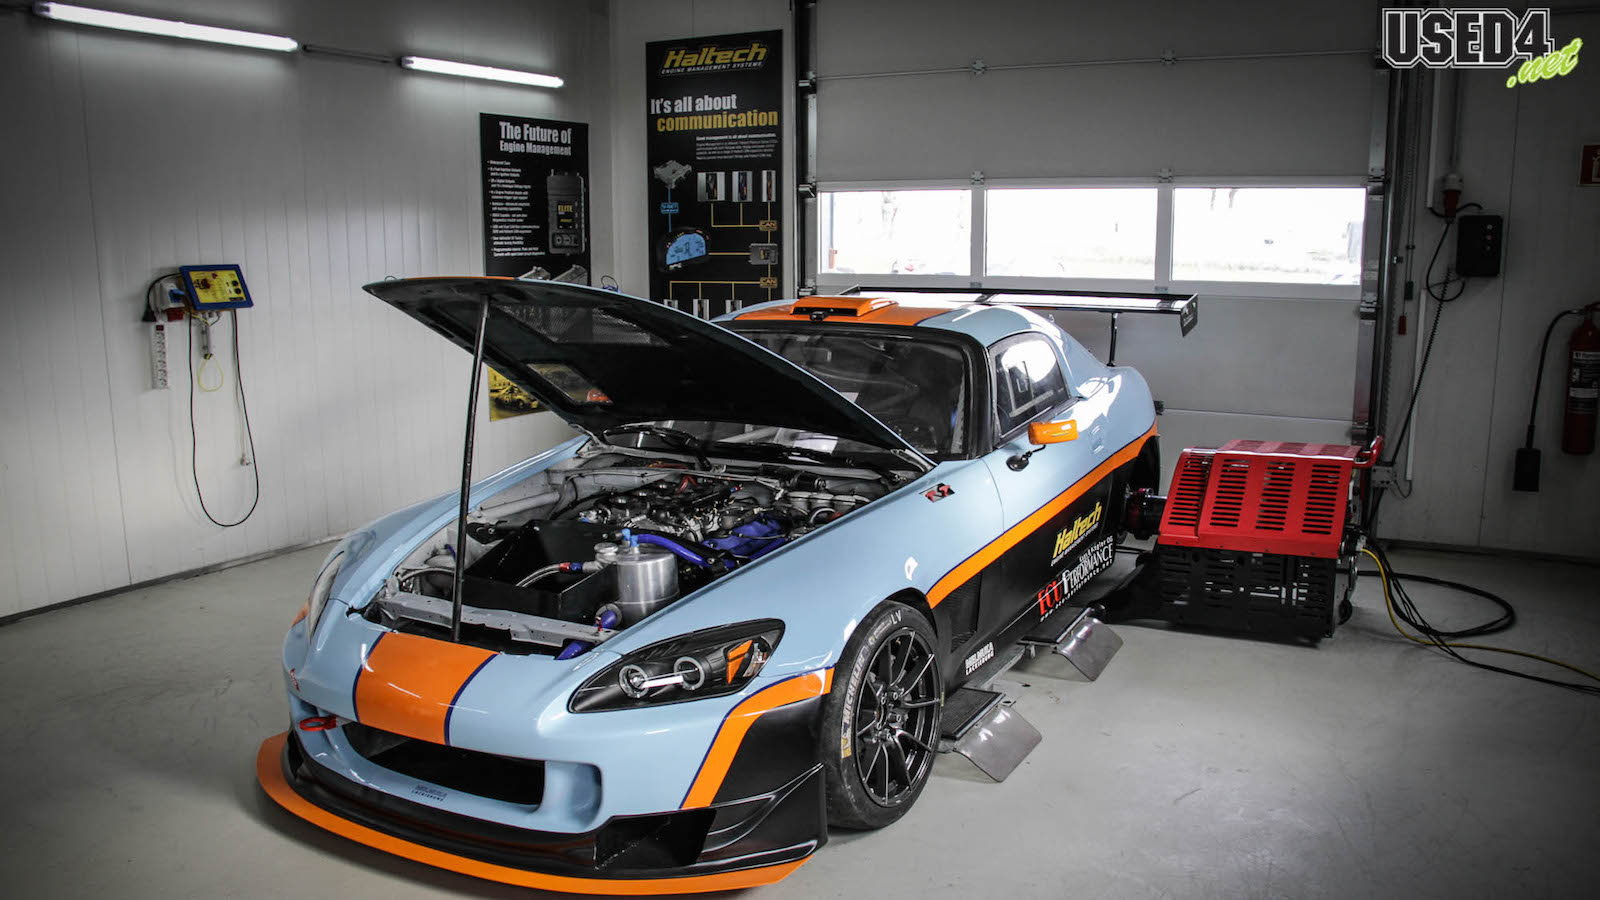 Building a Top-Level Time Attack Car